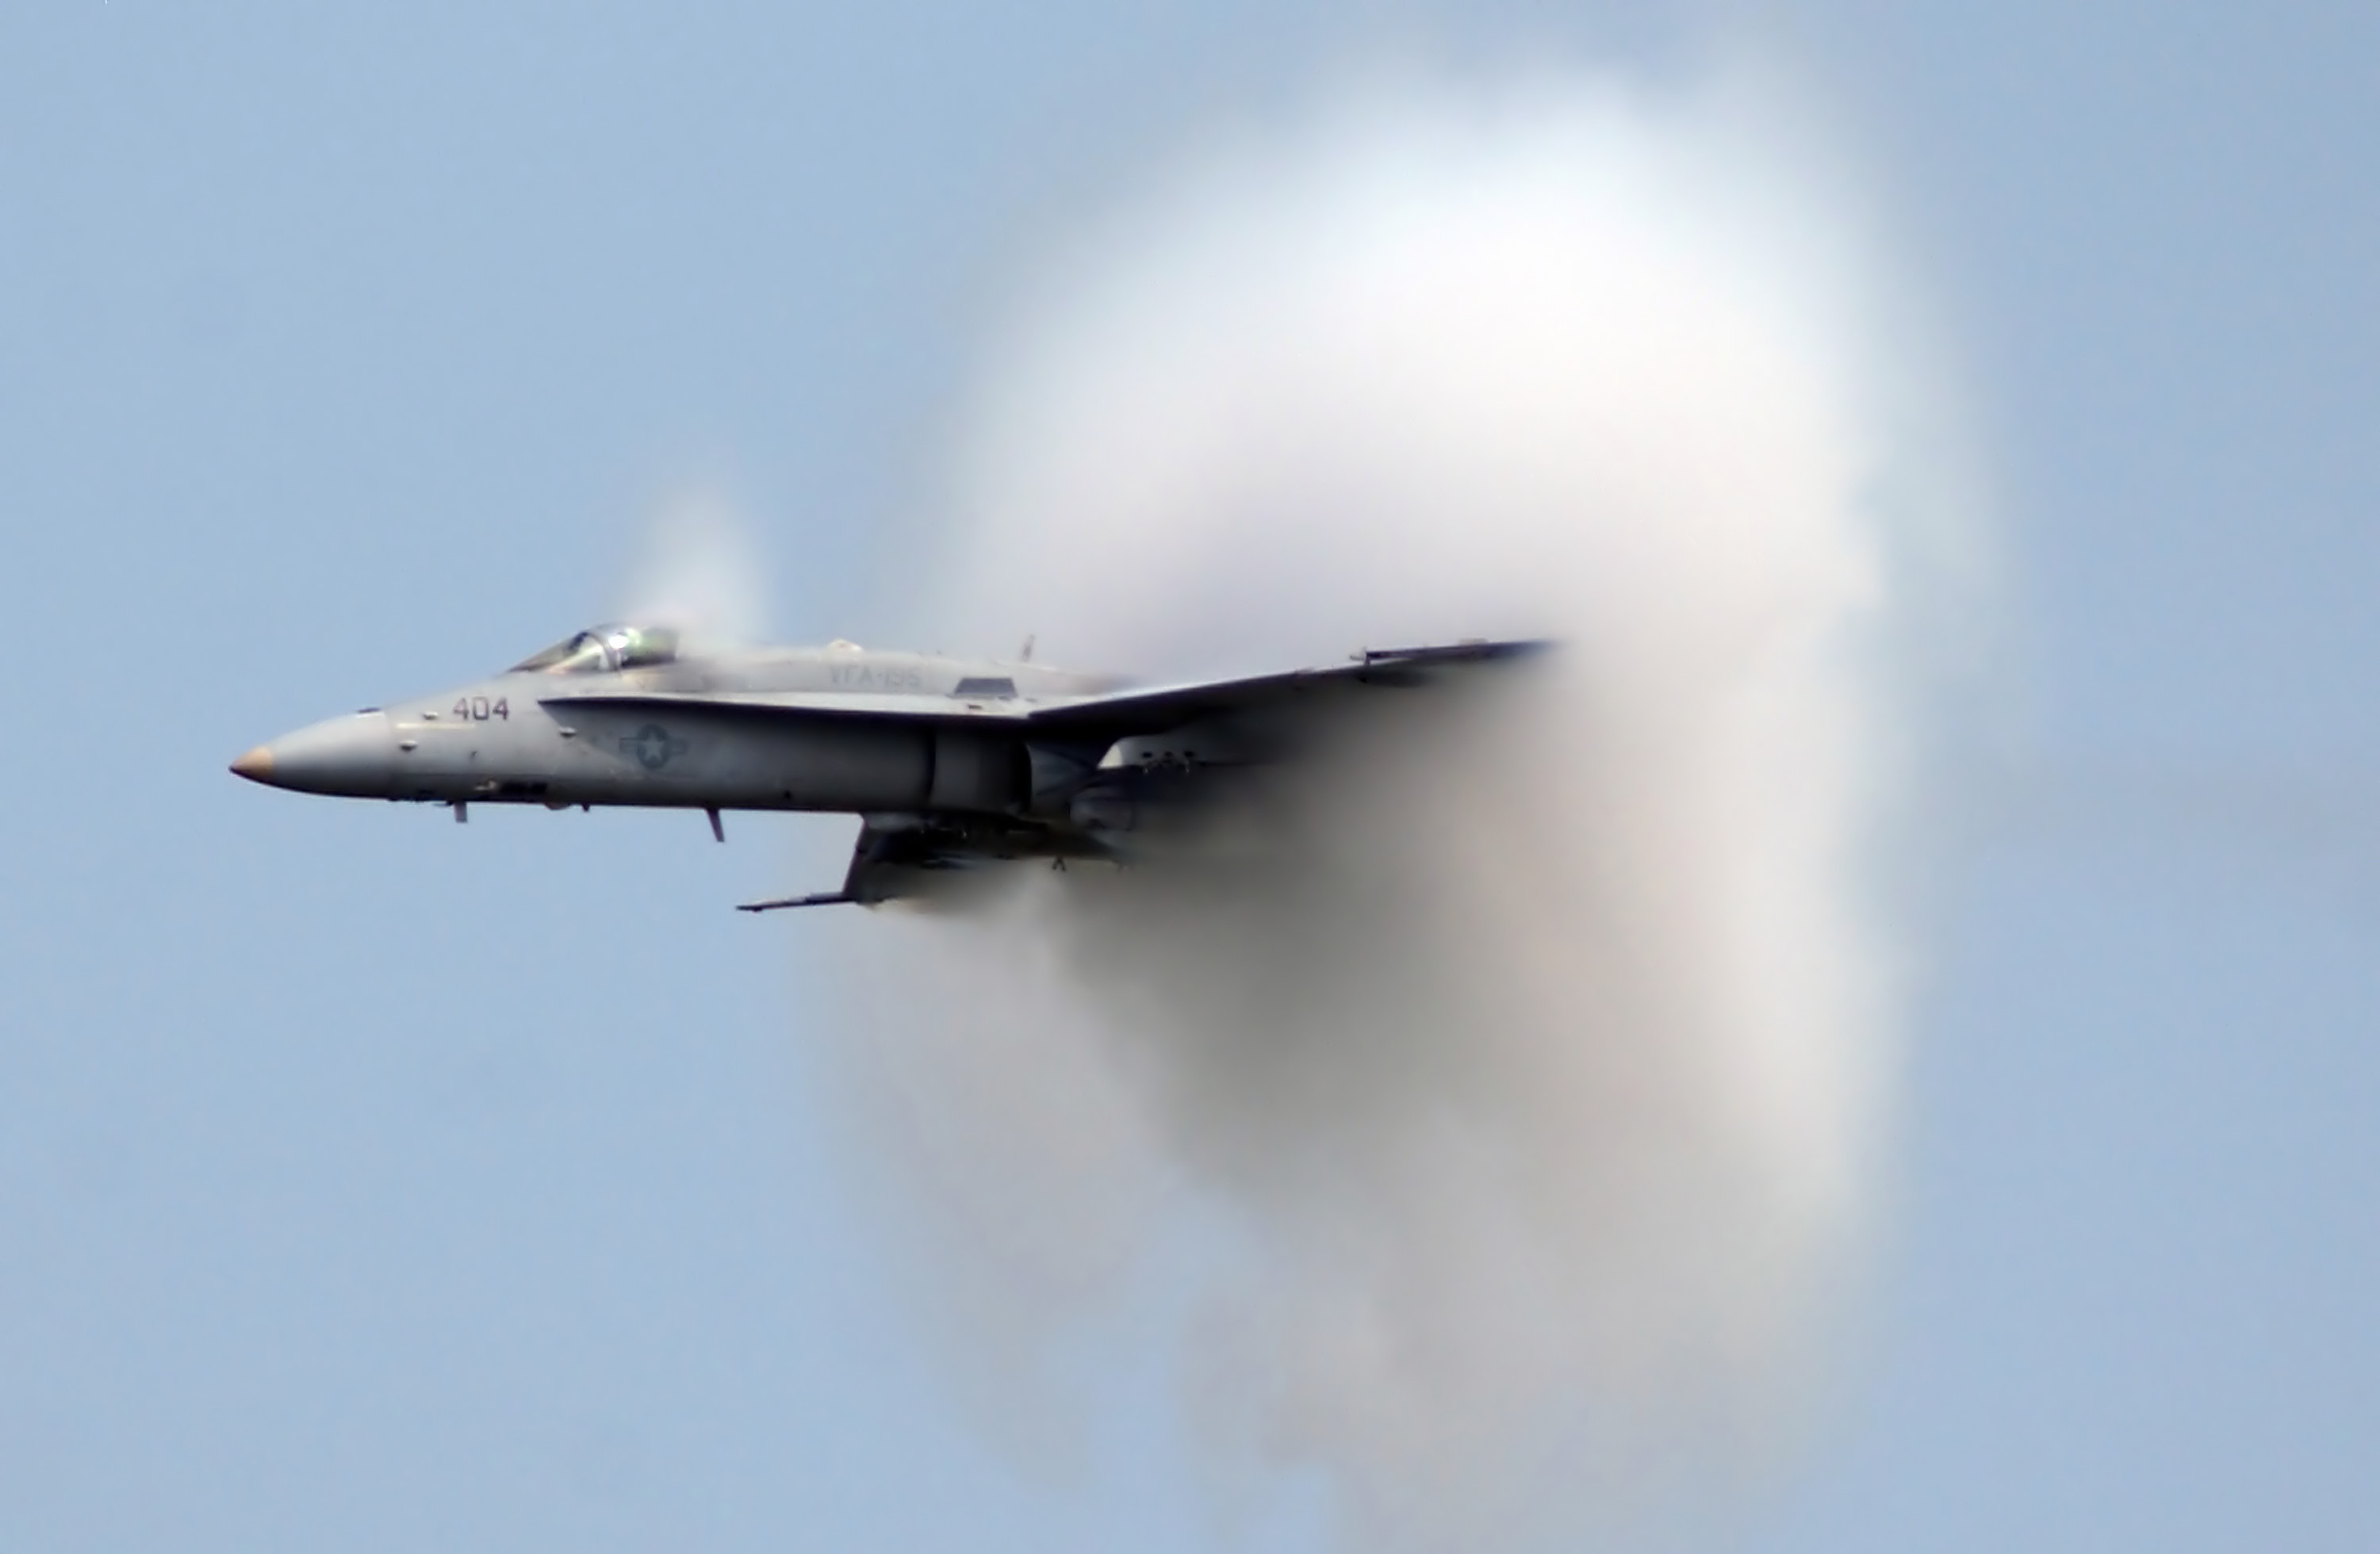 breaking the sound barrier Breaking the sound barrier movie yify subtitles  fictionalized story of british aerospace engineers solving the problem of supersonic flight.